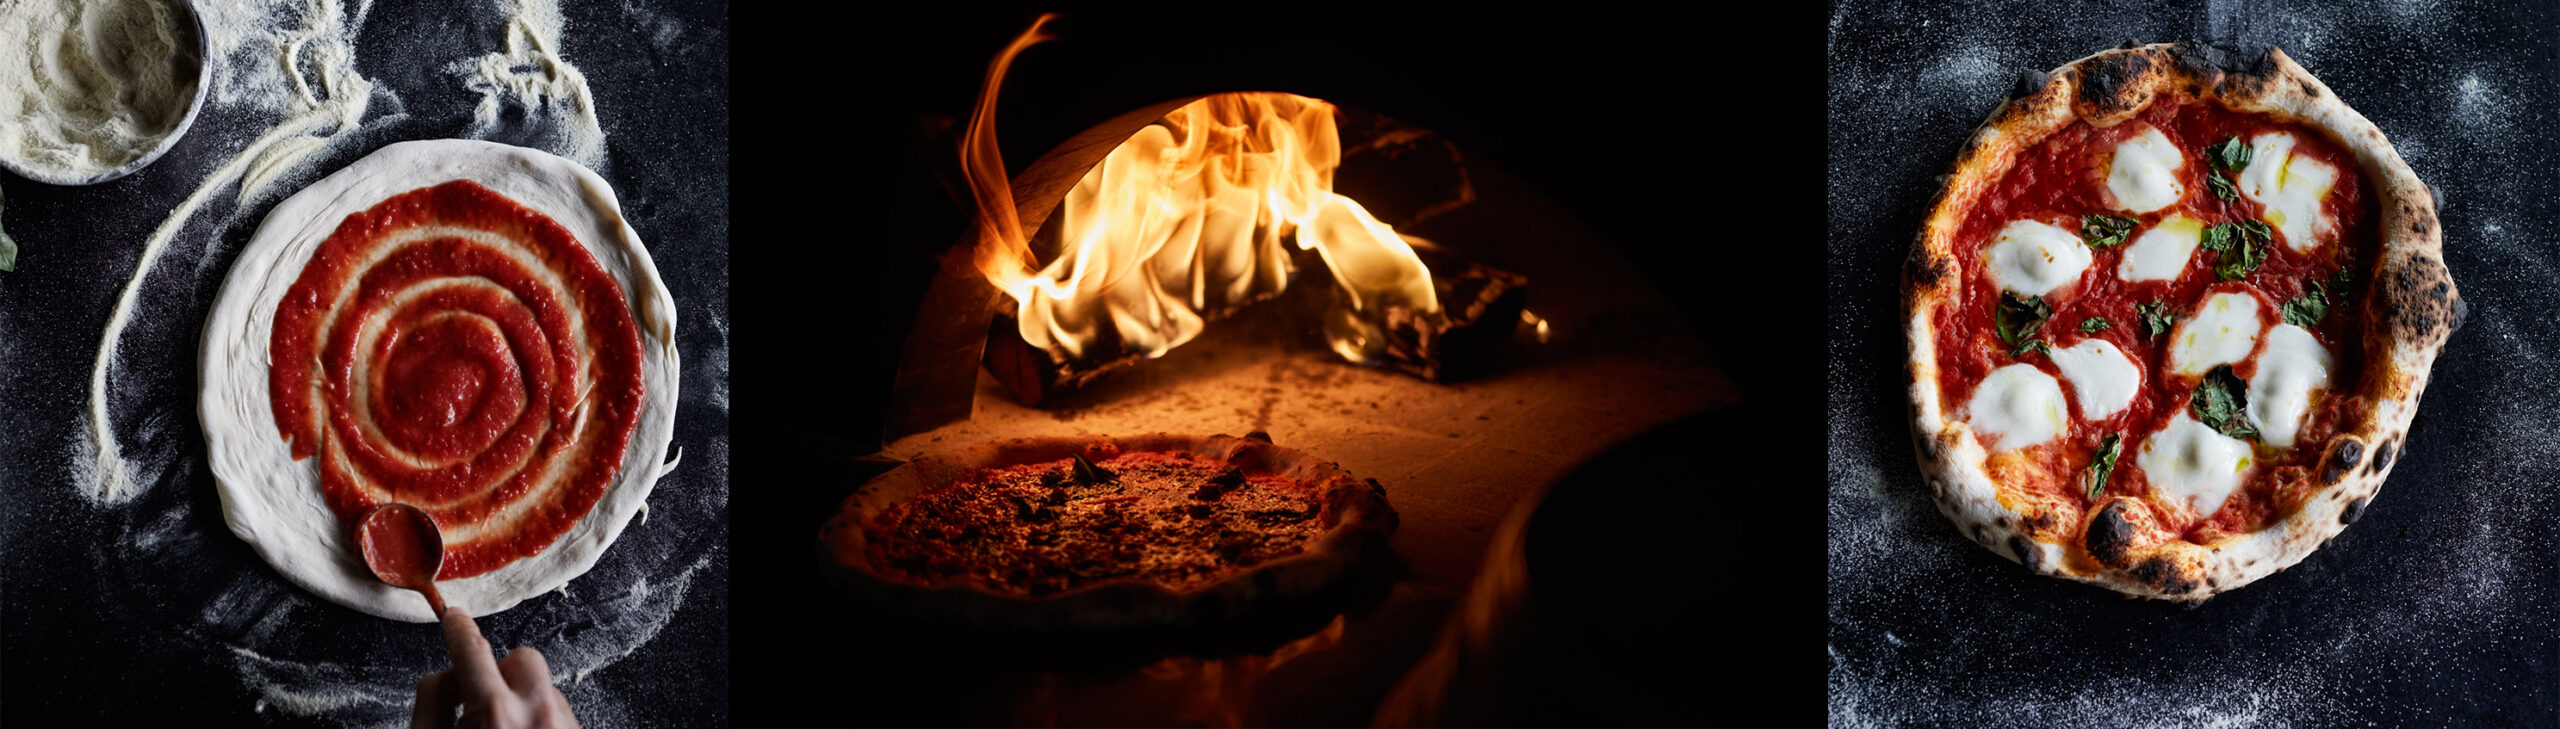 Jody Horton's photos of the process of pizza making: adding sauce, fire in the oven, finished product